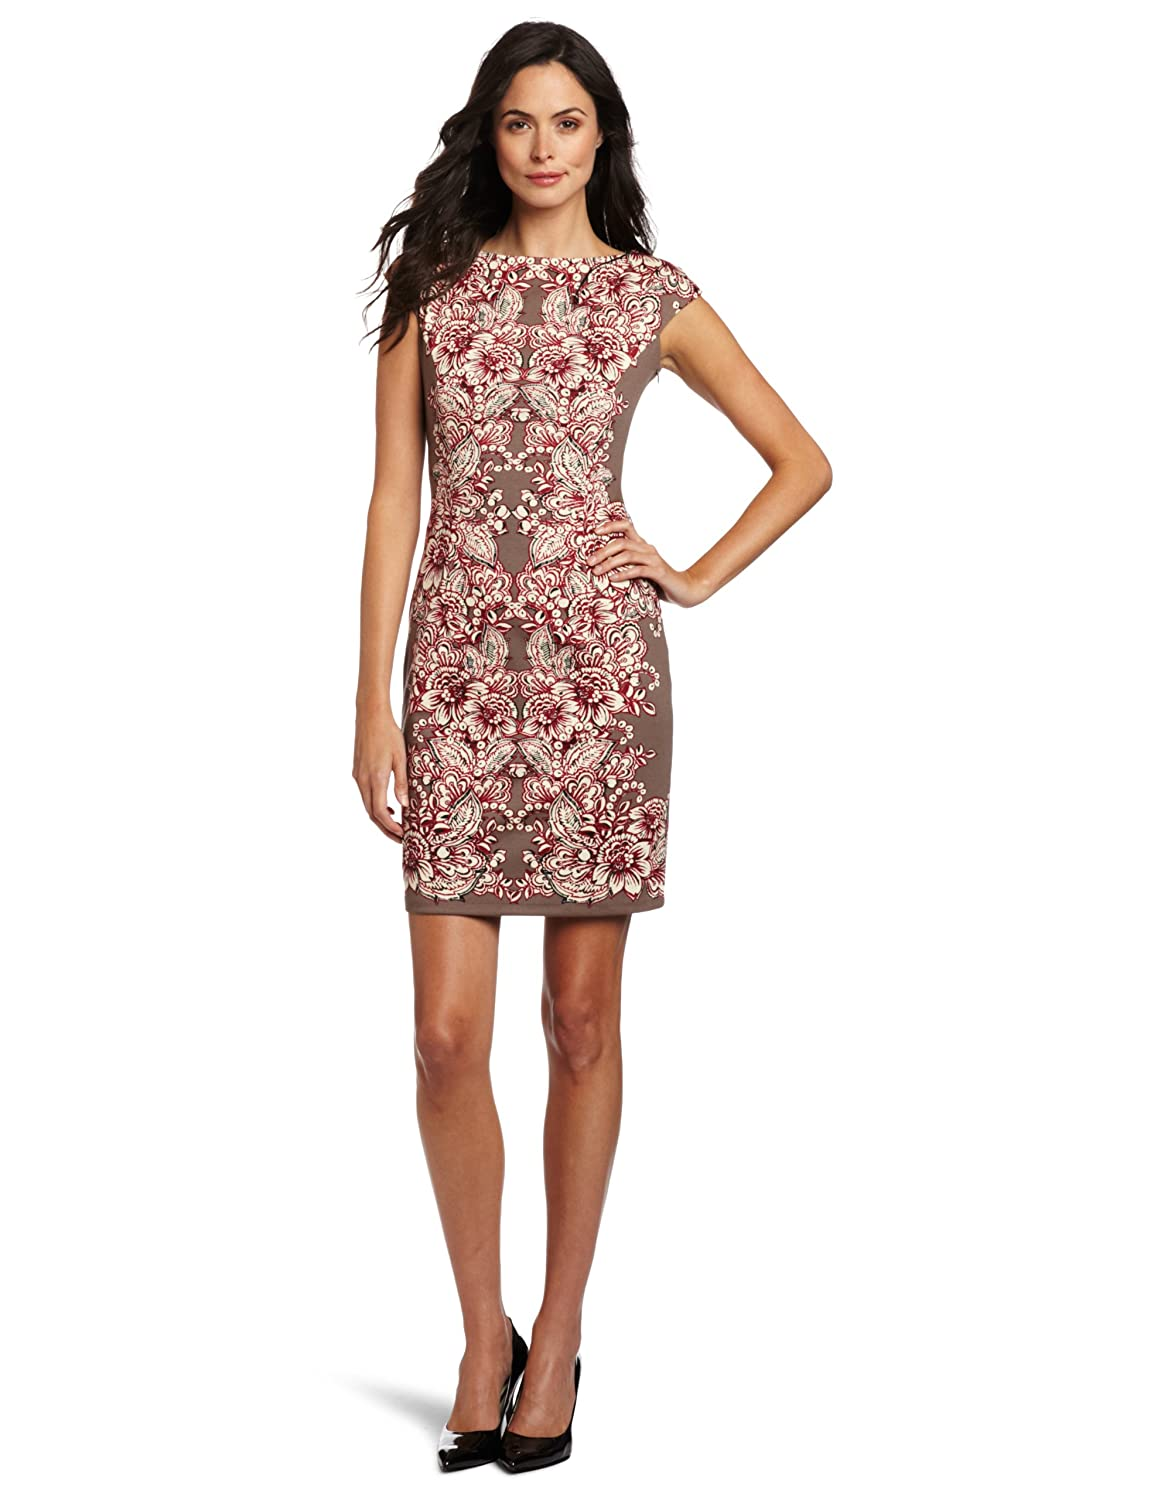 AdShop Ladies' Dresses at JCPenney®. Free Shipping Every Day at JCPenney®.Types: Dresses, Tops, Jeans, Activewear, Sweaters, Jackets, Maternity.